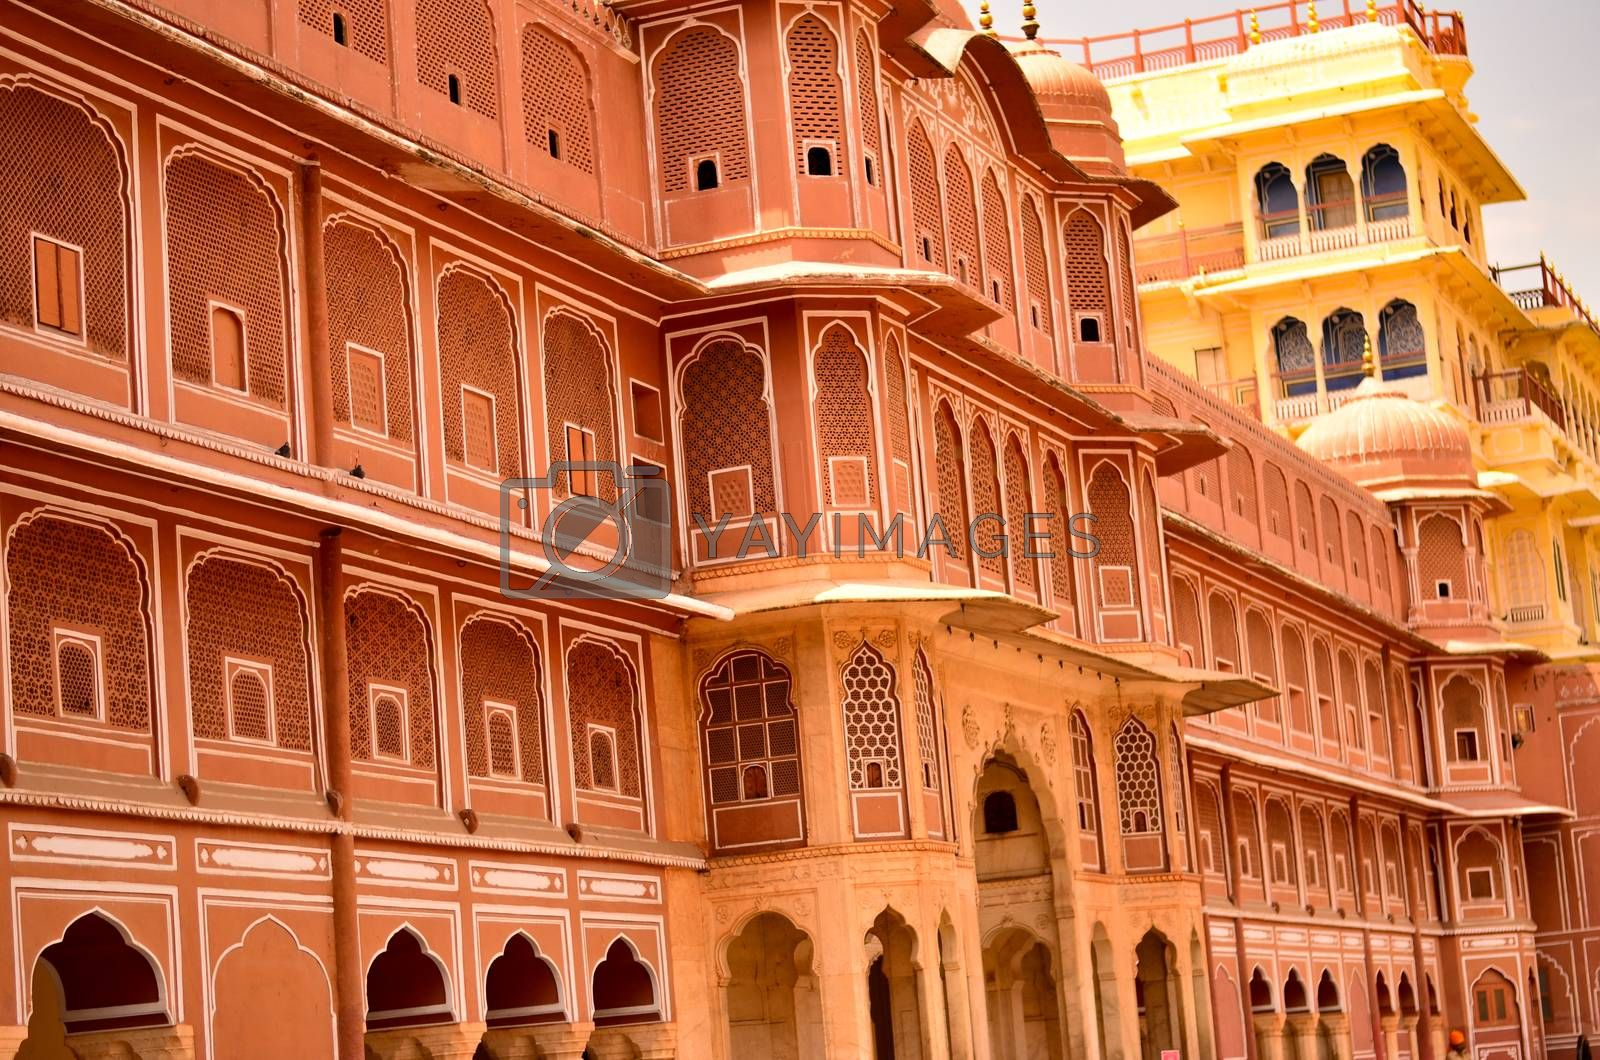 Wall section of City Palace, which includes the Chandra Mahal and Mubarak Mahal palaces and other buildings, is a palace complex in Jaipur, the capital of the Rajasthan, India.